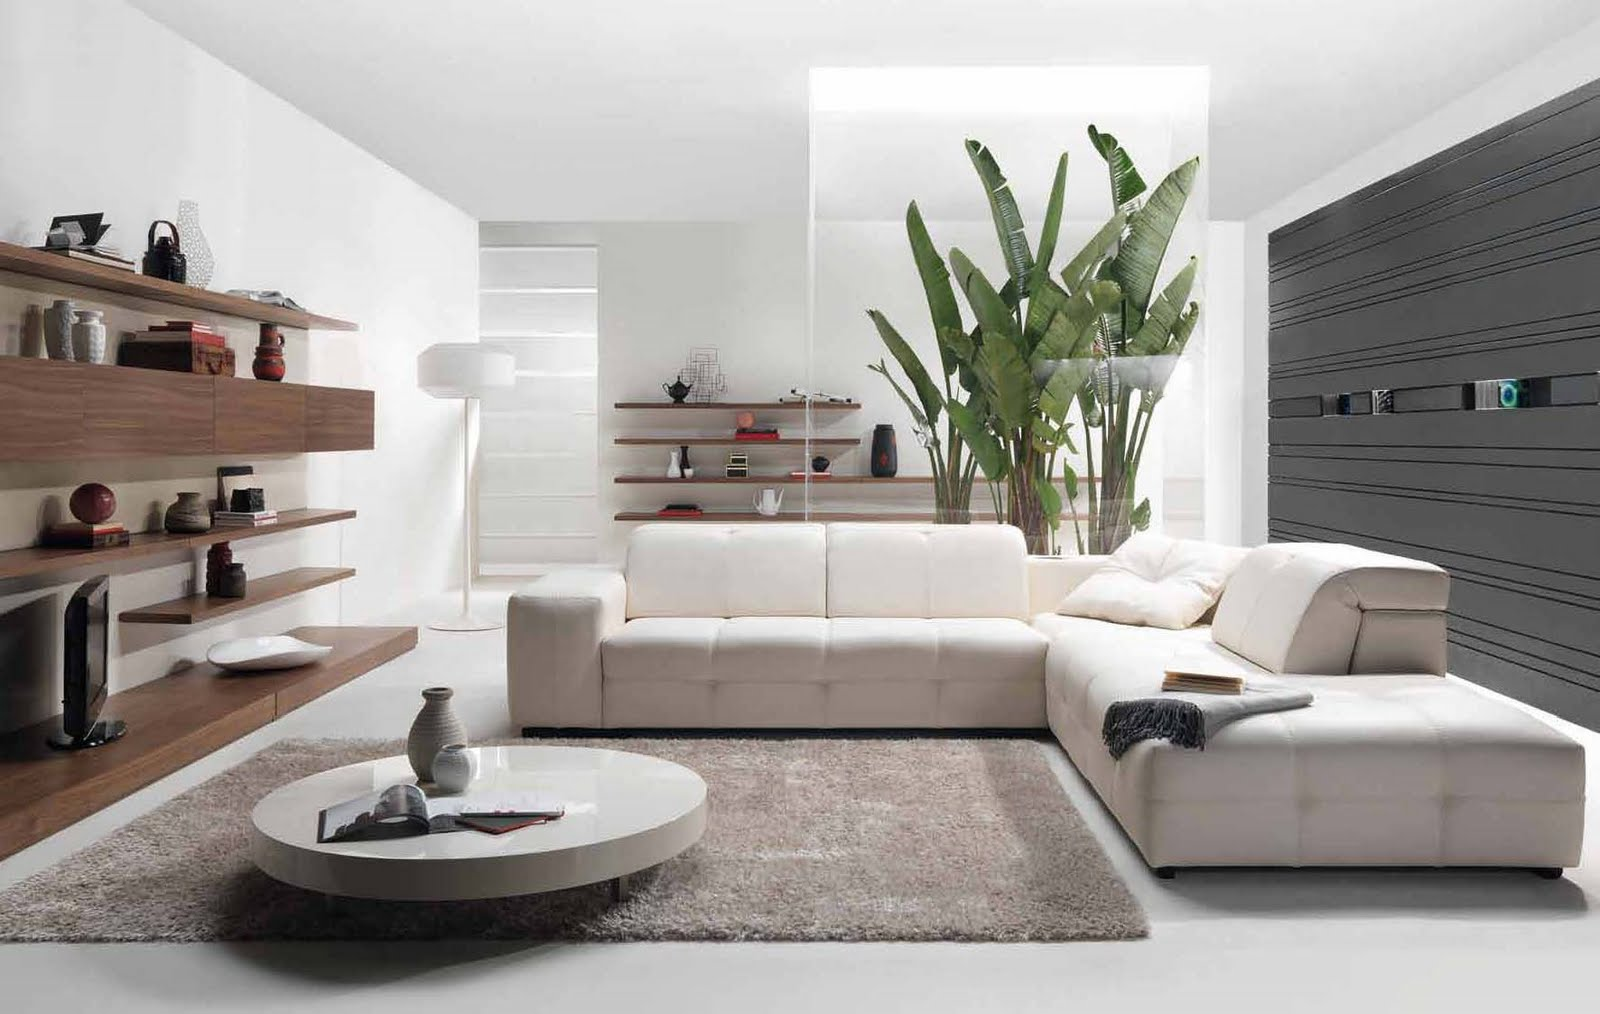 Future house design modern living room interior design for Interior design styles